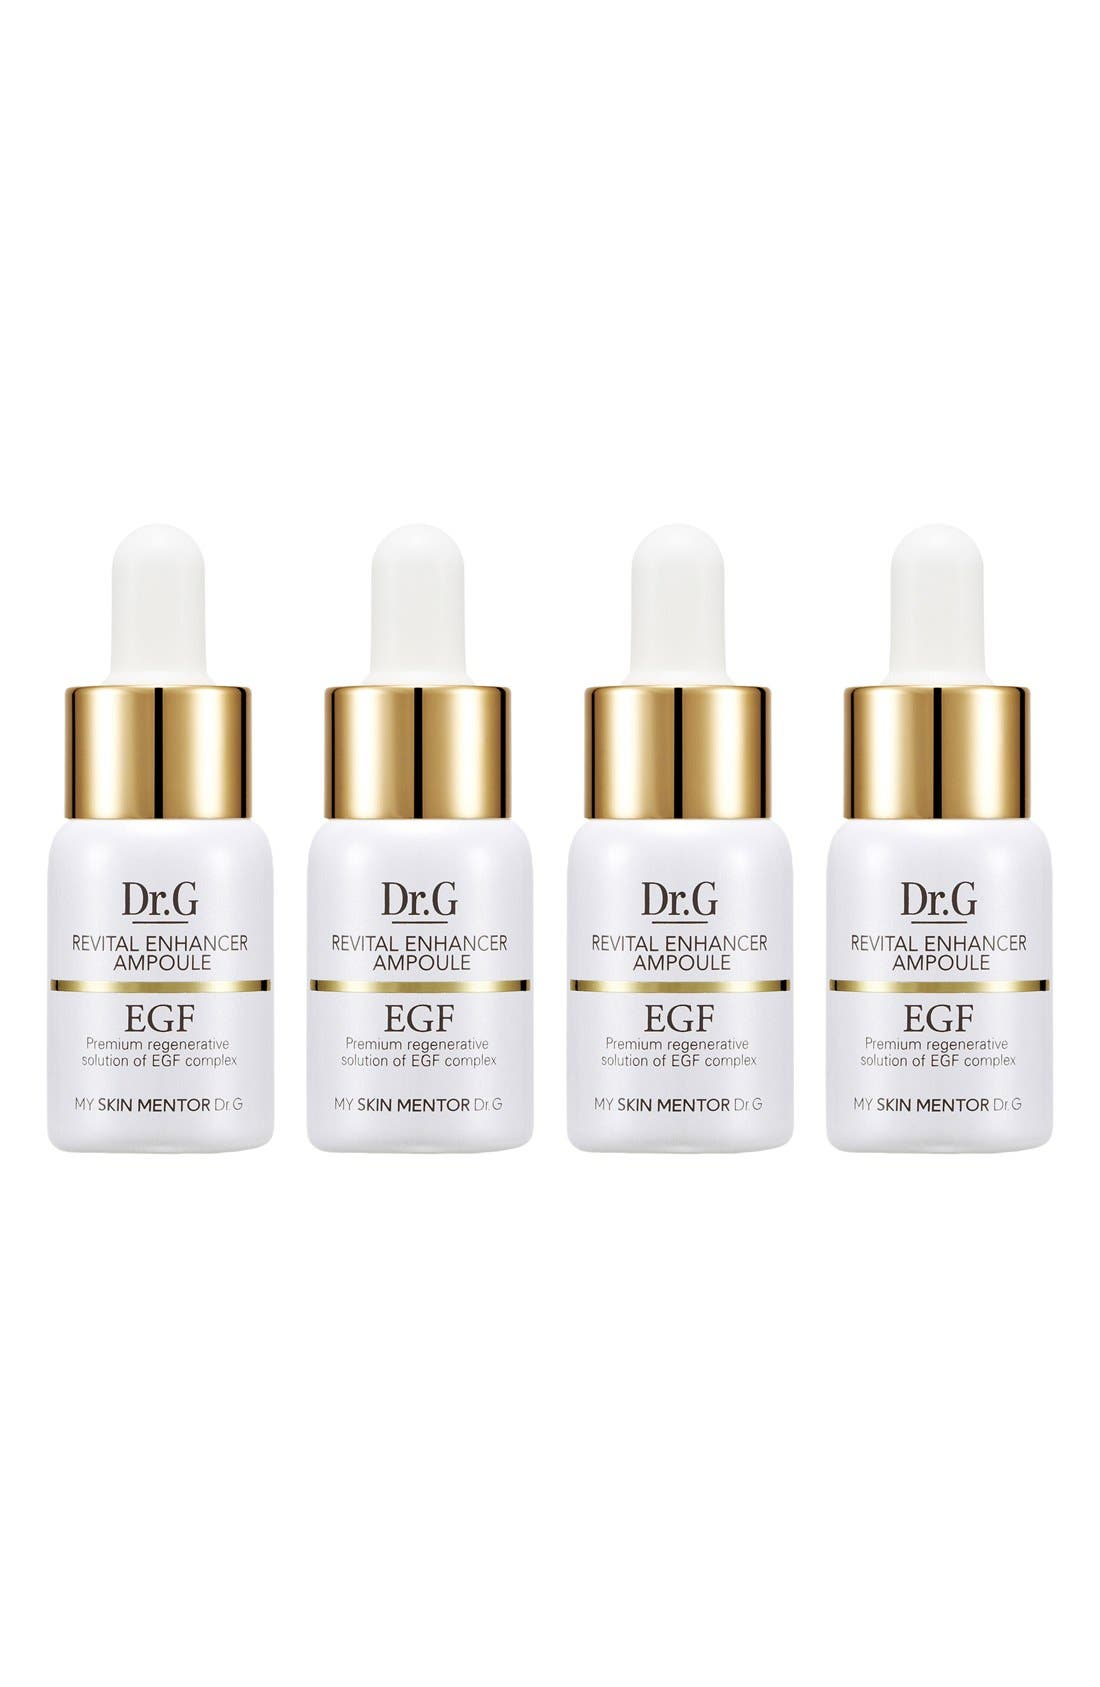 My Skin Mentor Dr. G Beauty Revital Enhancer EGF Ampoule Four-Week Program